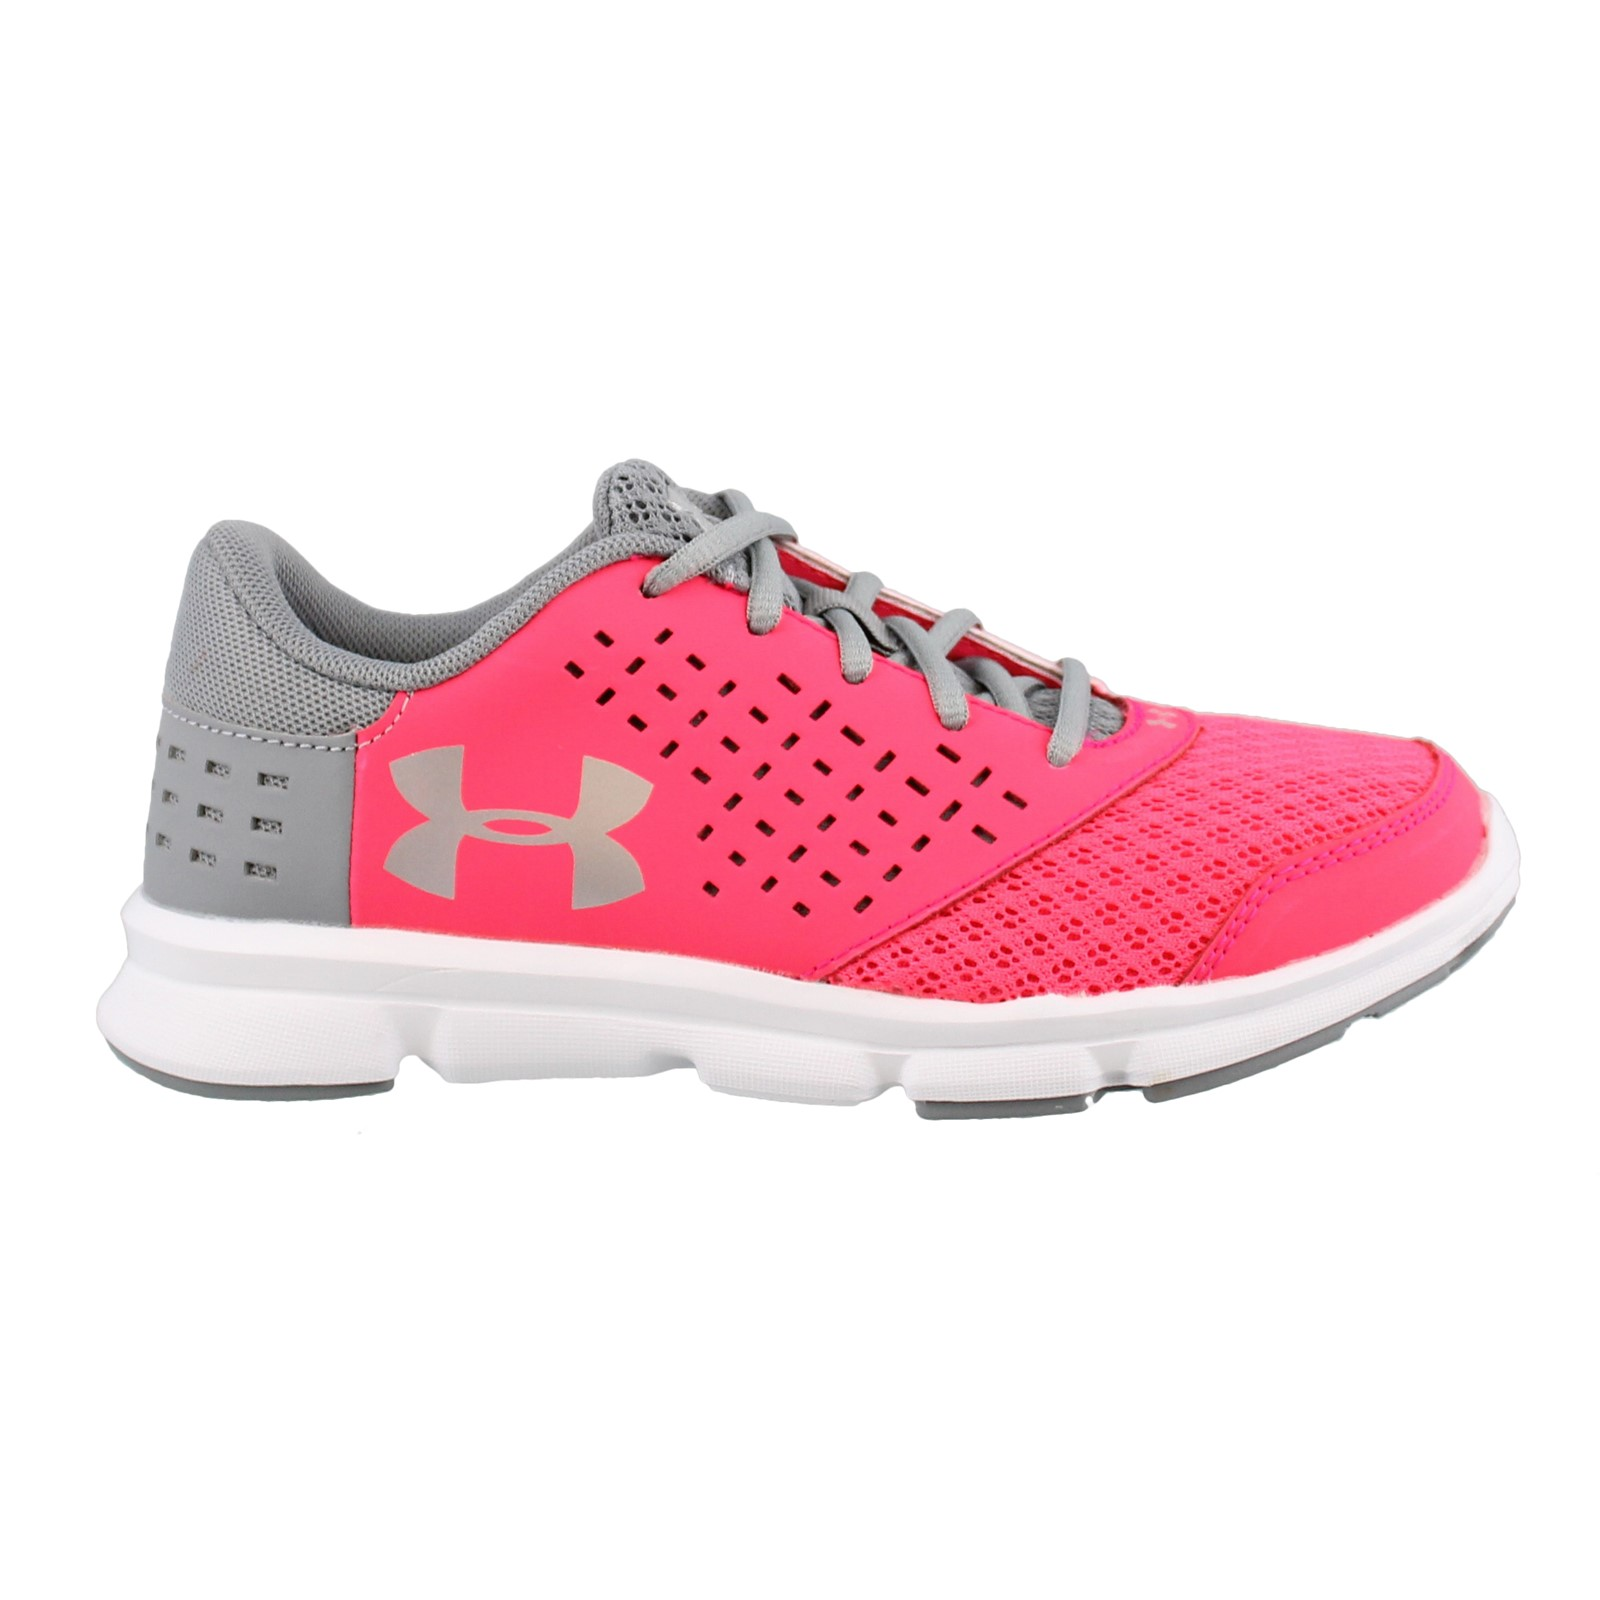 Girl's Under Armour, Micro G Rave Sneakers